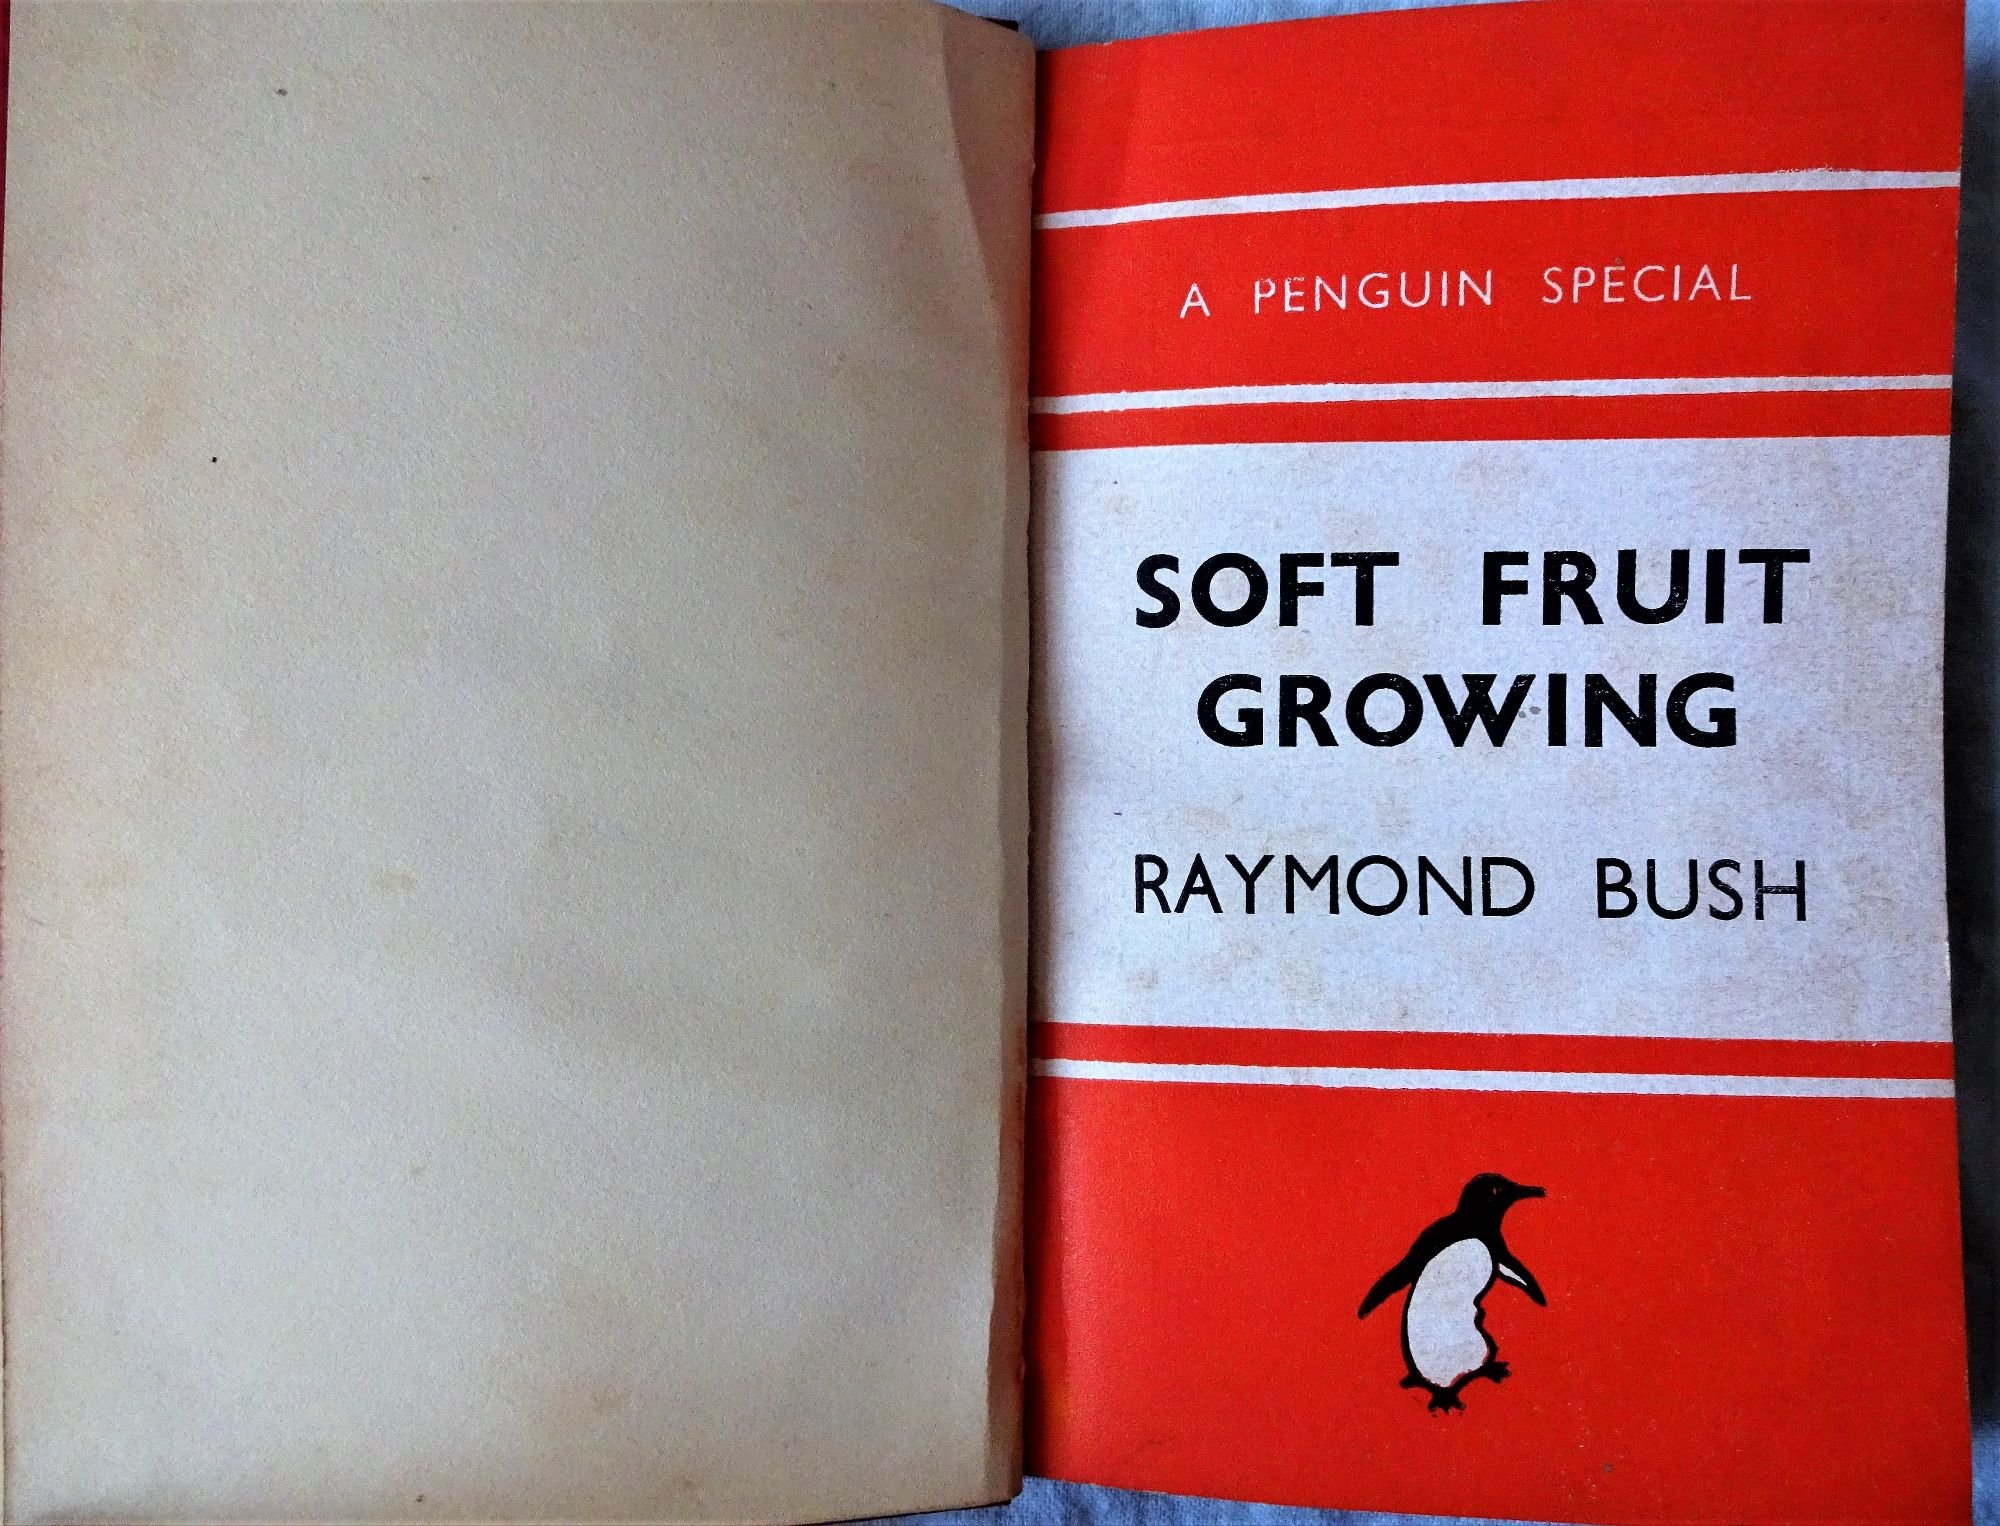 Raymond Bush, Soft Fruit Growing, Penguin Special, 1942.